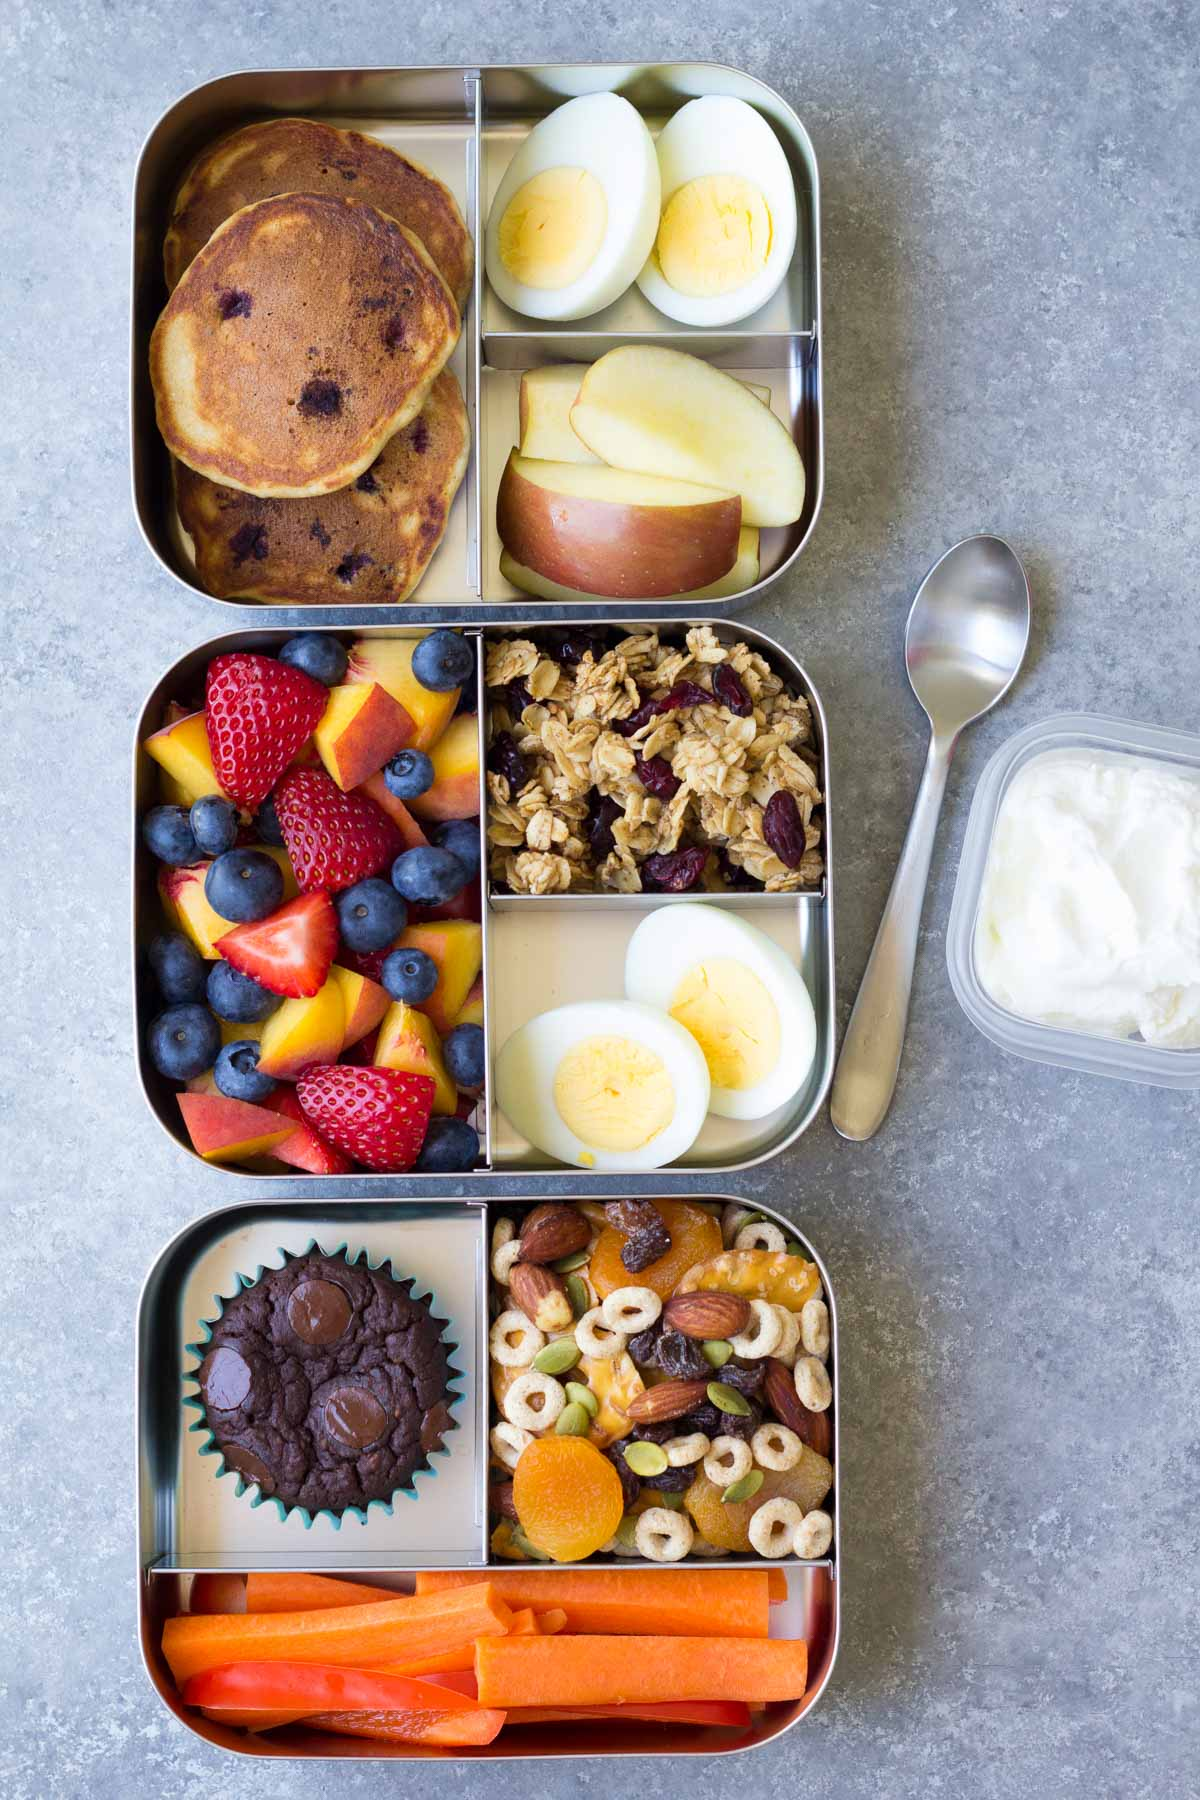 10 More Healthy Lunch Ideas for Kids (for the School Lunch Box or Home) from Kristine's Kitchen